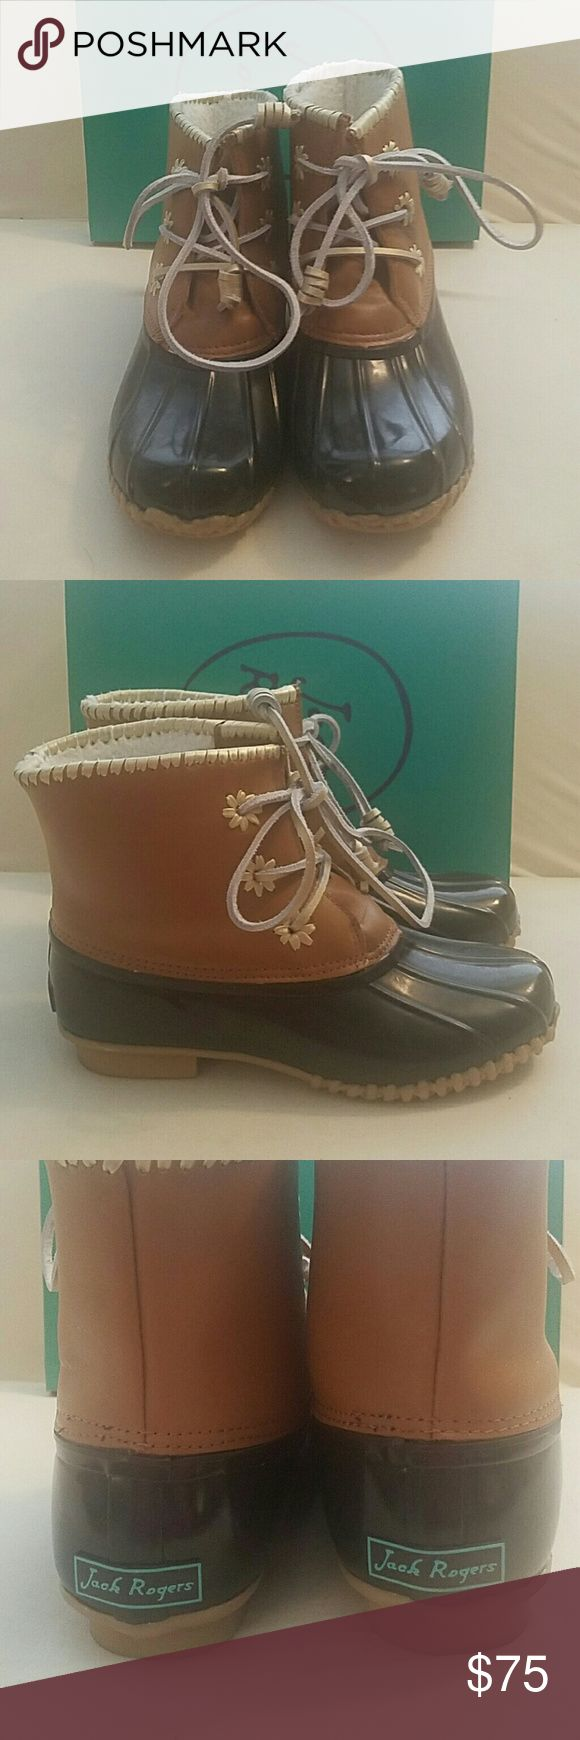 JACK ROGERS CHLOE BROWN Duck Boot 8 New in Box JACK ROGERS CHLOE dark brown duck boots size 8.  Have been tried on and worn around my house for about an hour.  SMOKE AND CAT FREE HOME! Jack Rogers Shoes Winter & Rain Boots